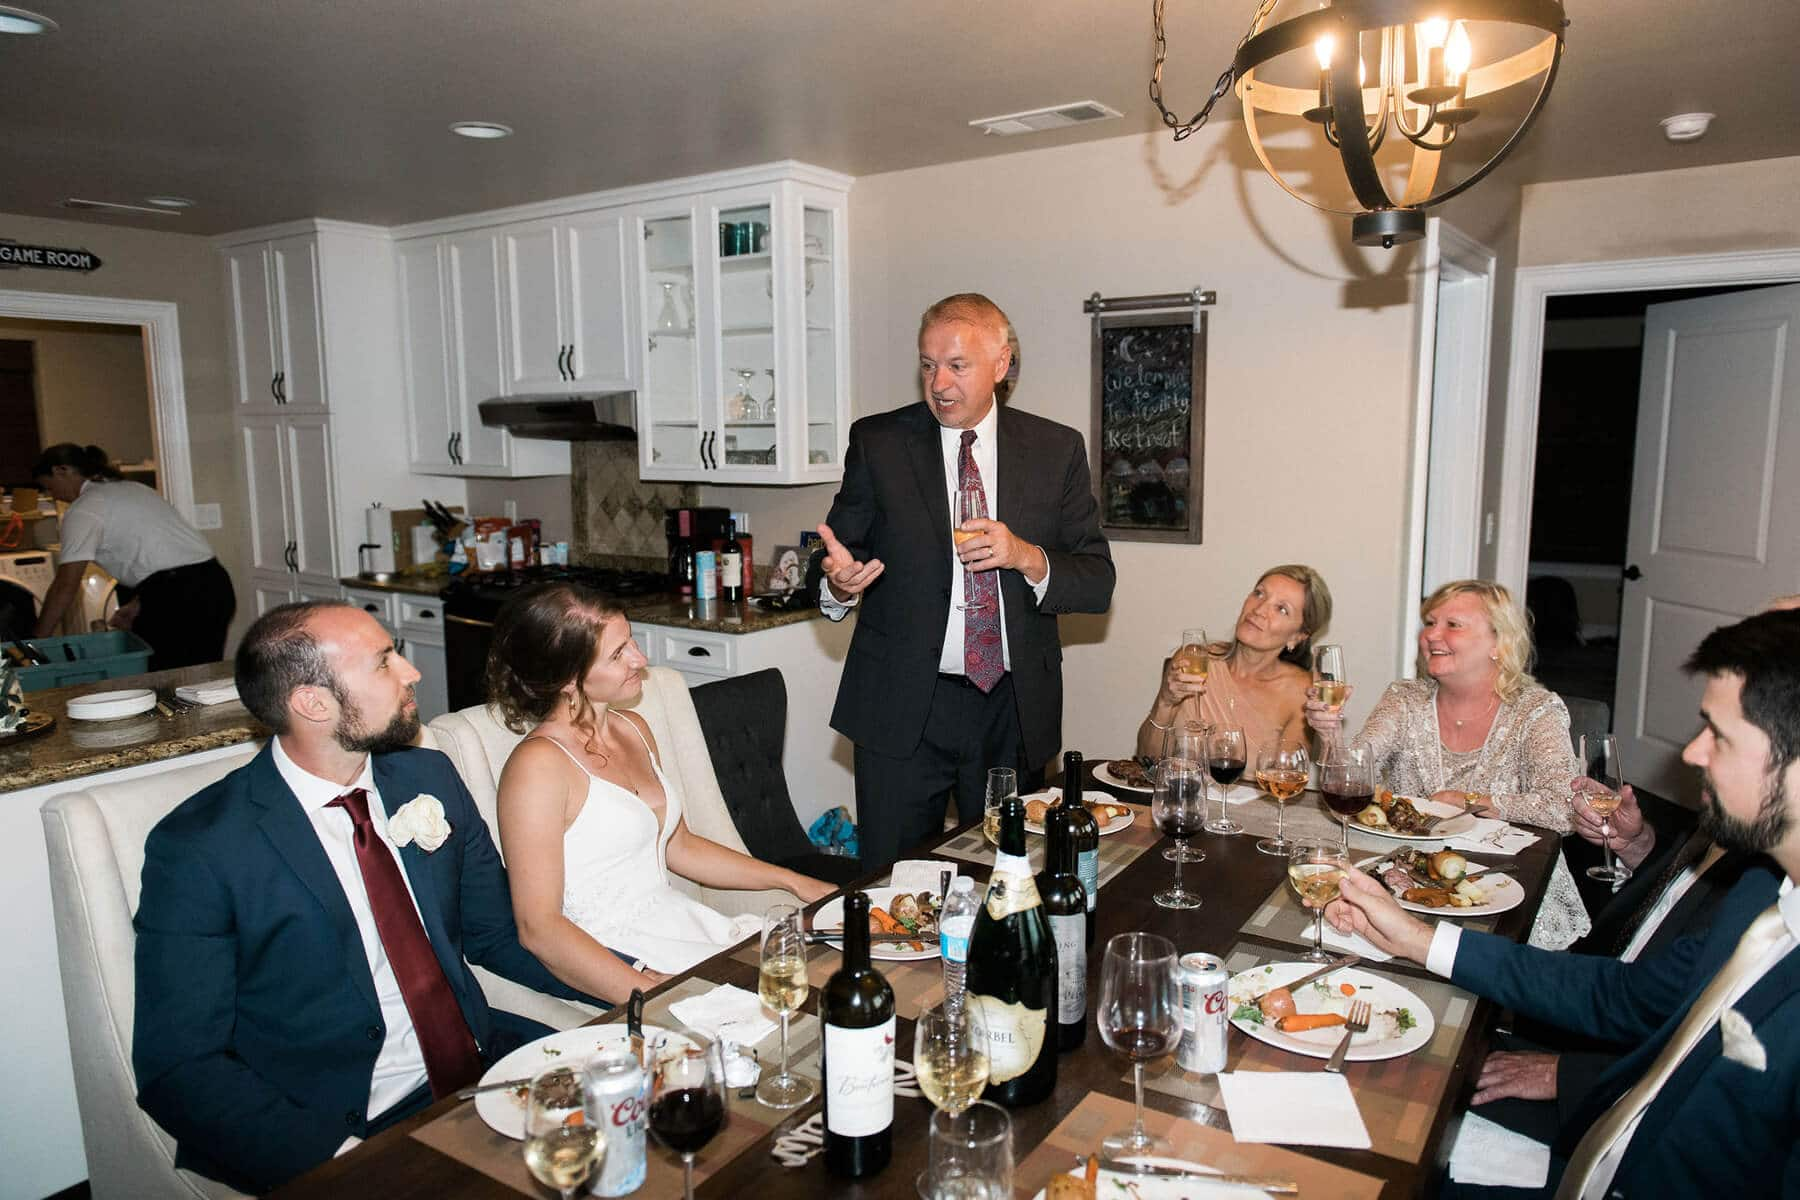 father of bride shares toast during intimate wedding reception at private residence in oakhurst california